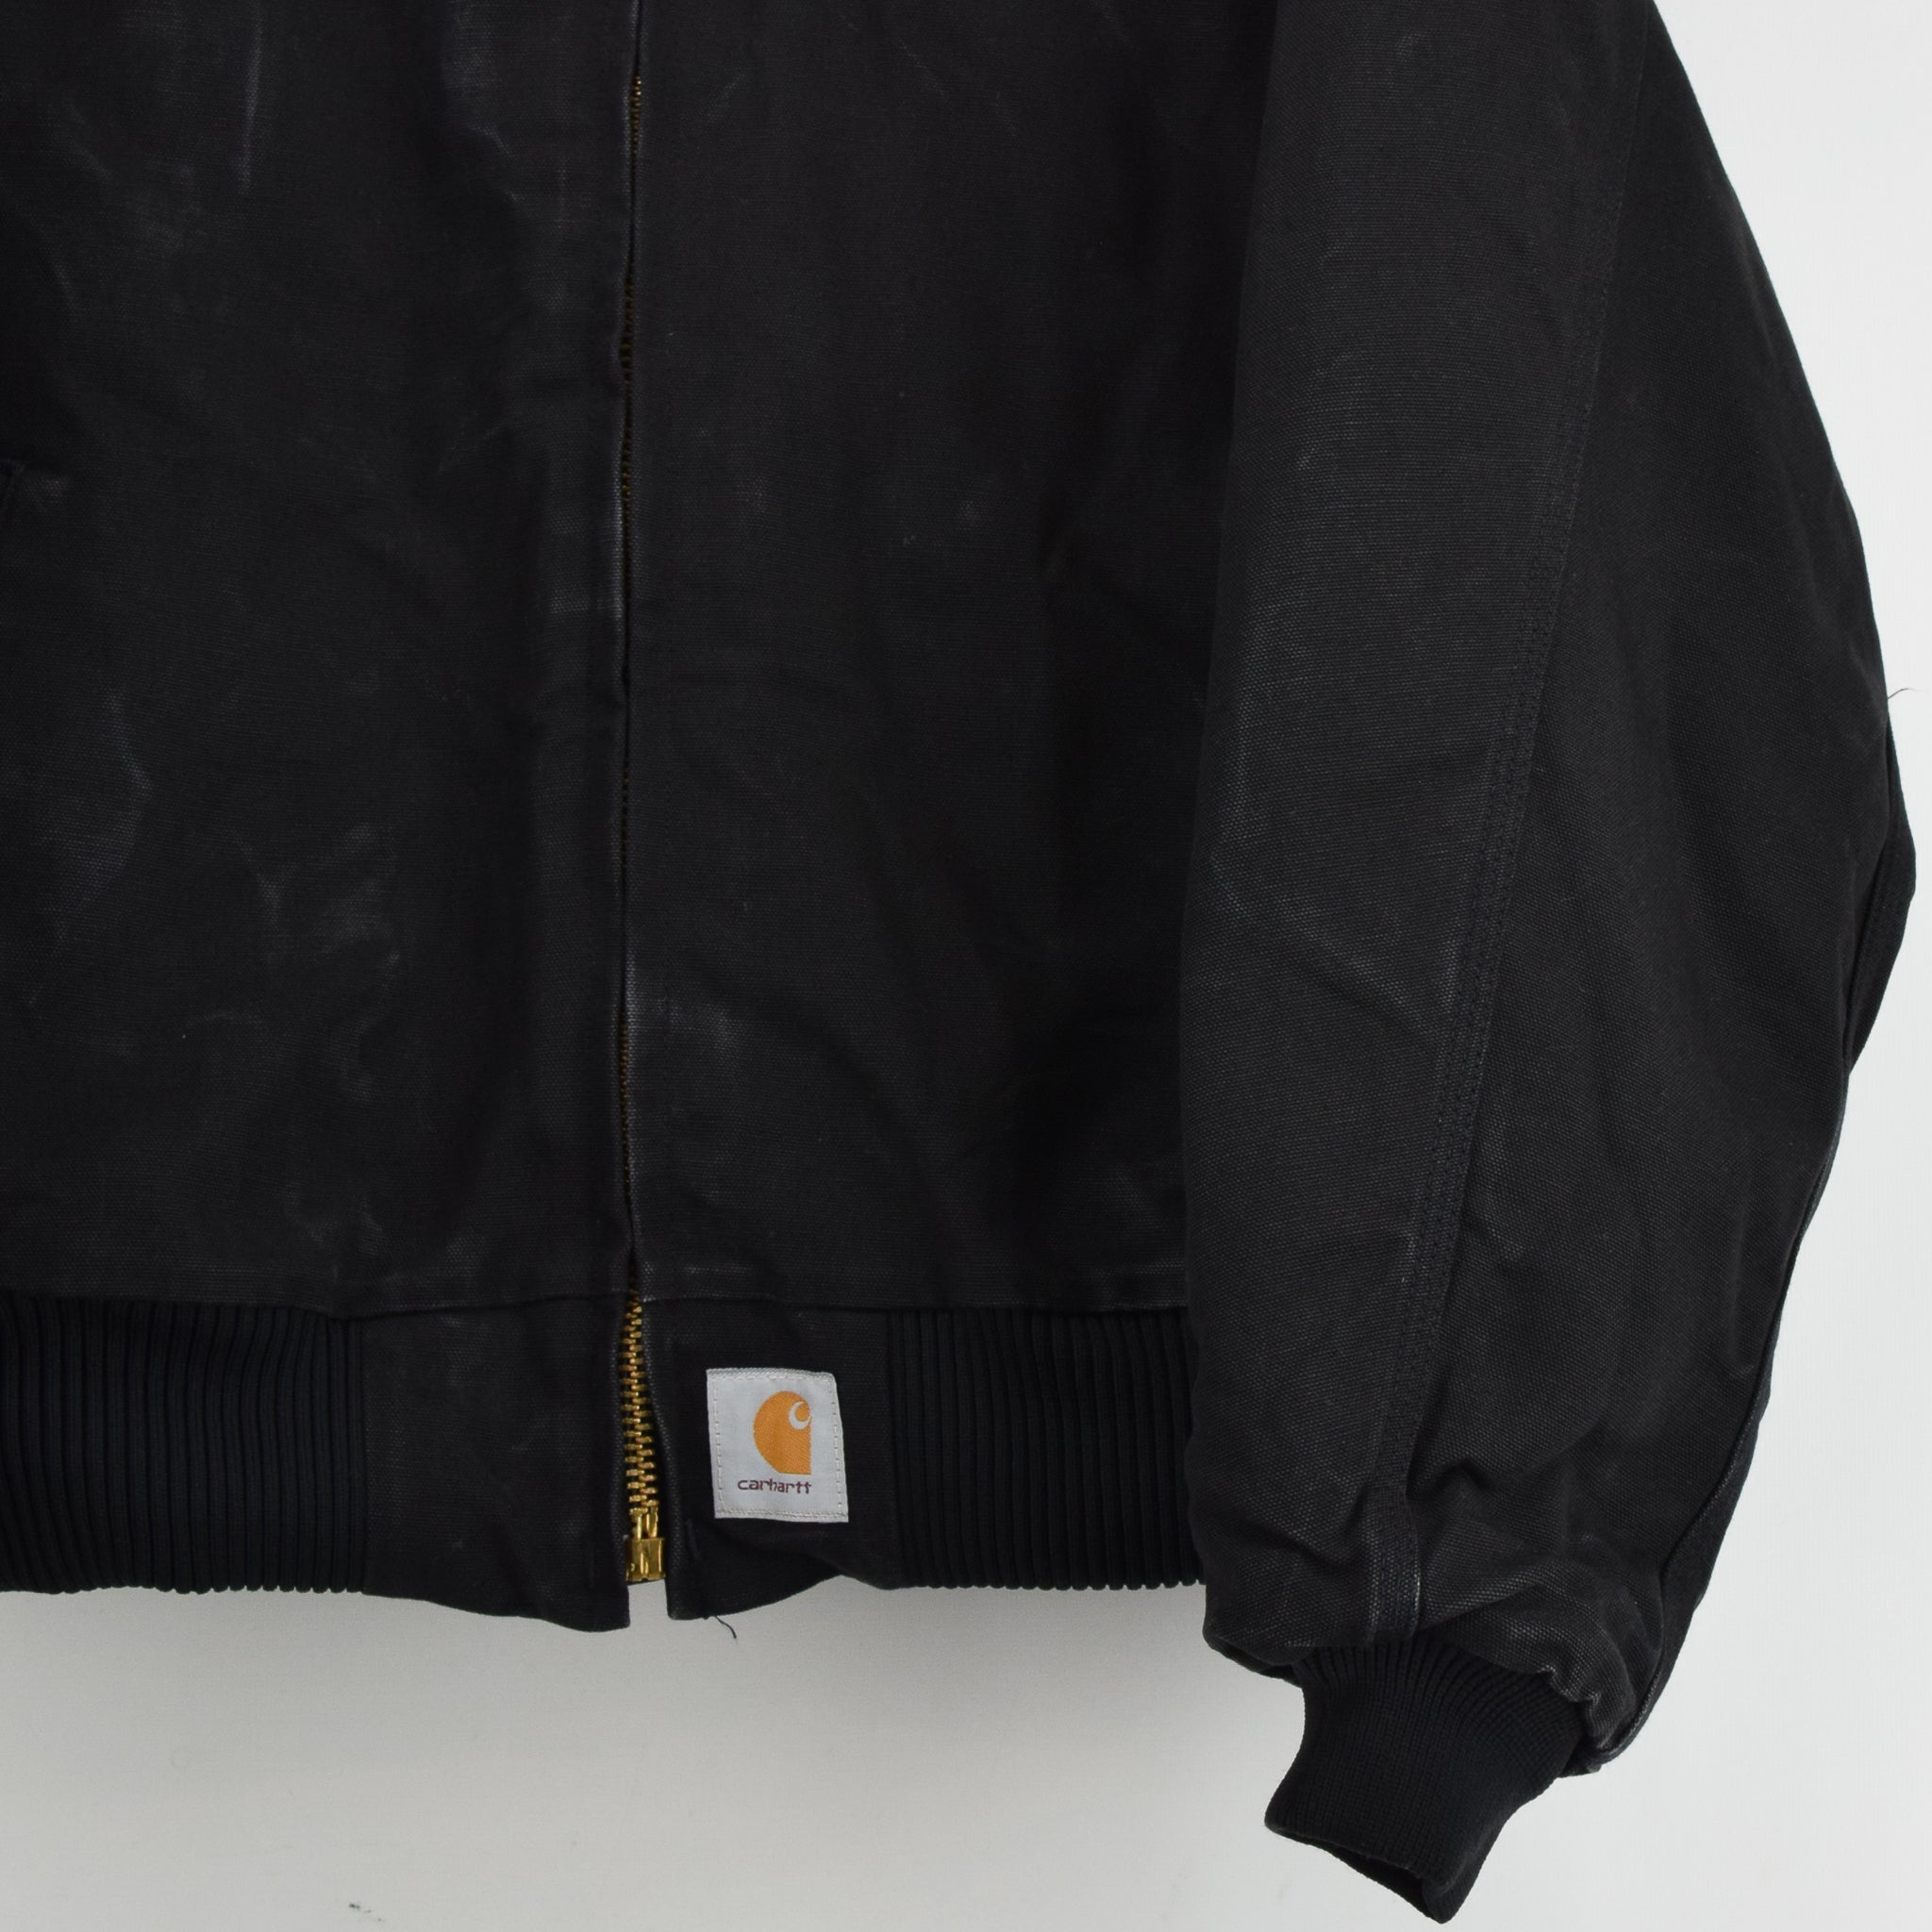 Vintage Carhartt Duck Canvas Quilt Lined Black Bomber Jacket Made in USA XL front hem